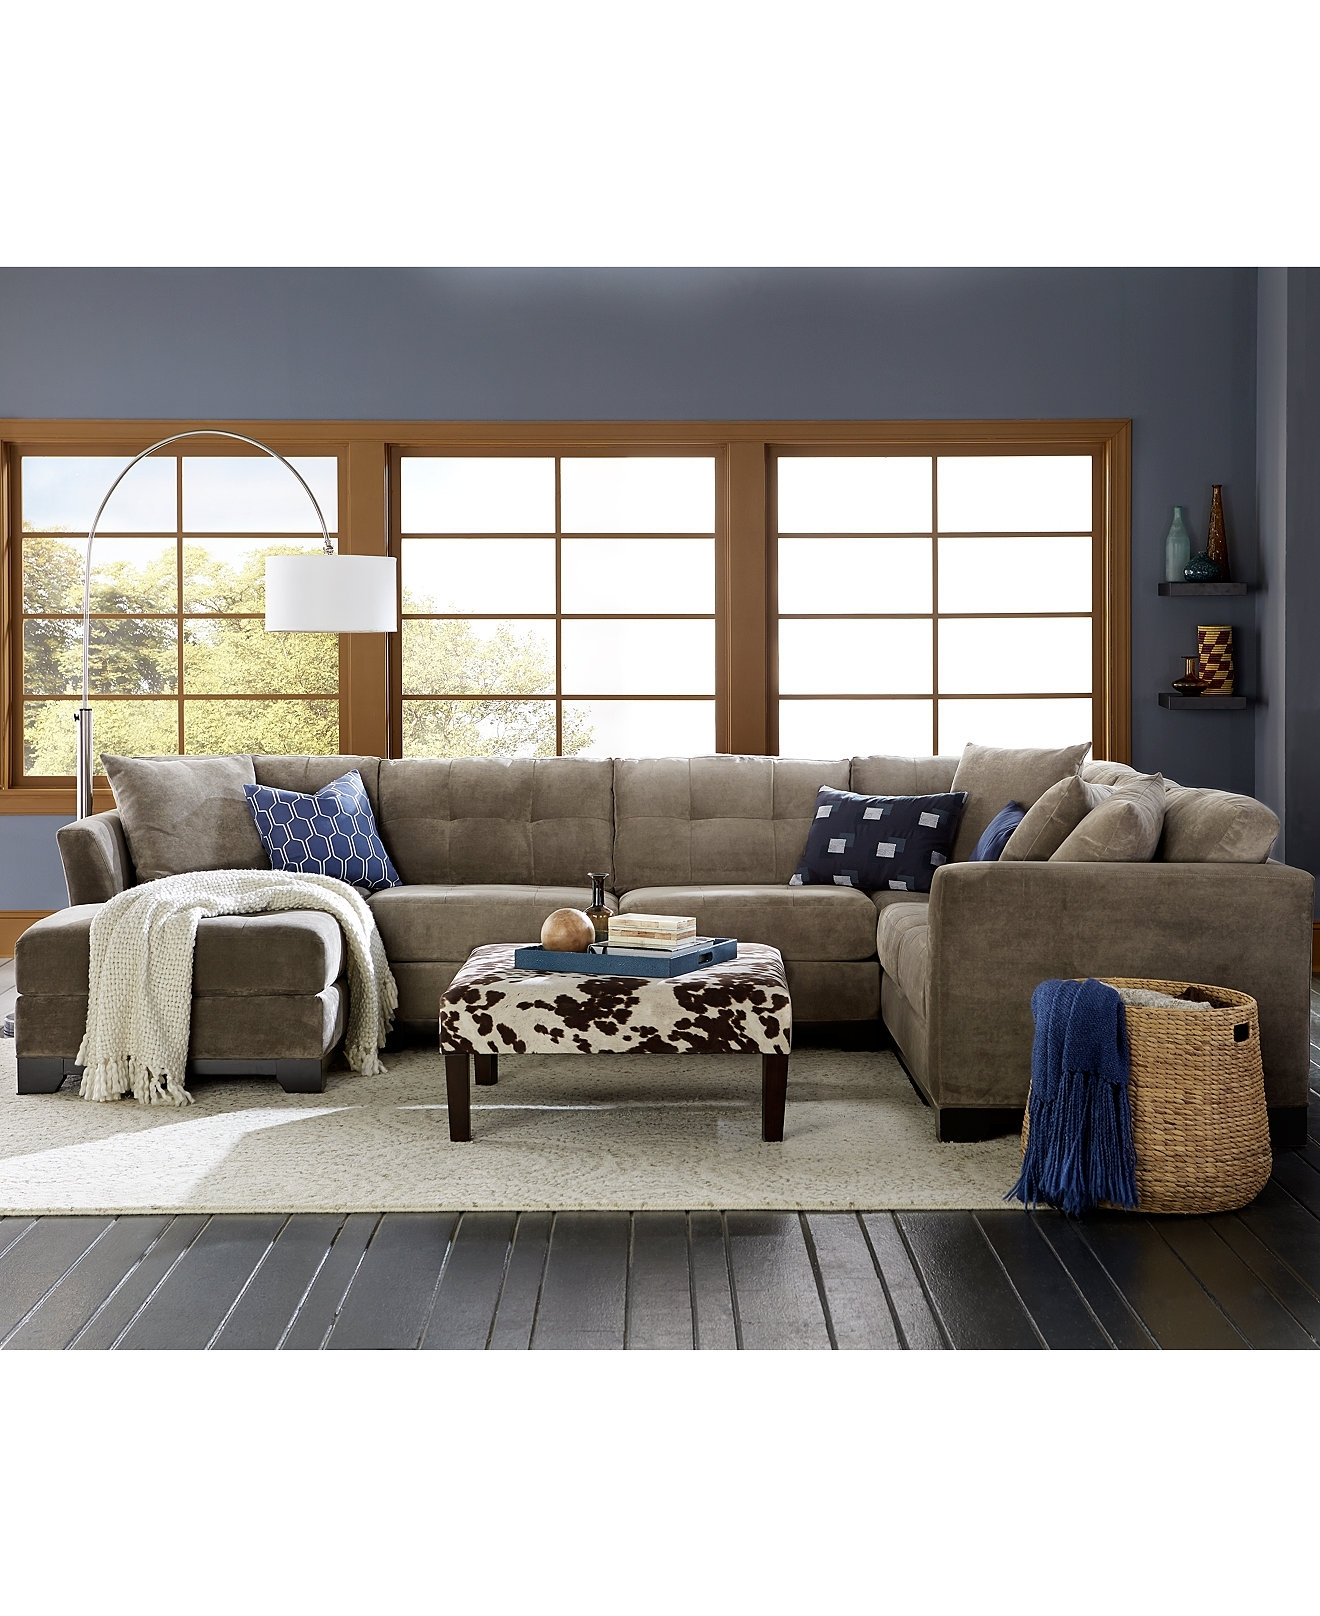 Macys Sectional Sofas With Latest Sofas: Elegant Living Room Sofas Designmacys Sectional Sofa (View 9 of 15)